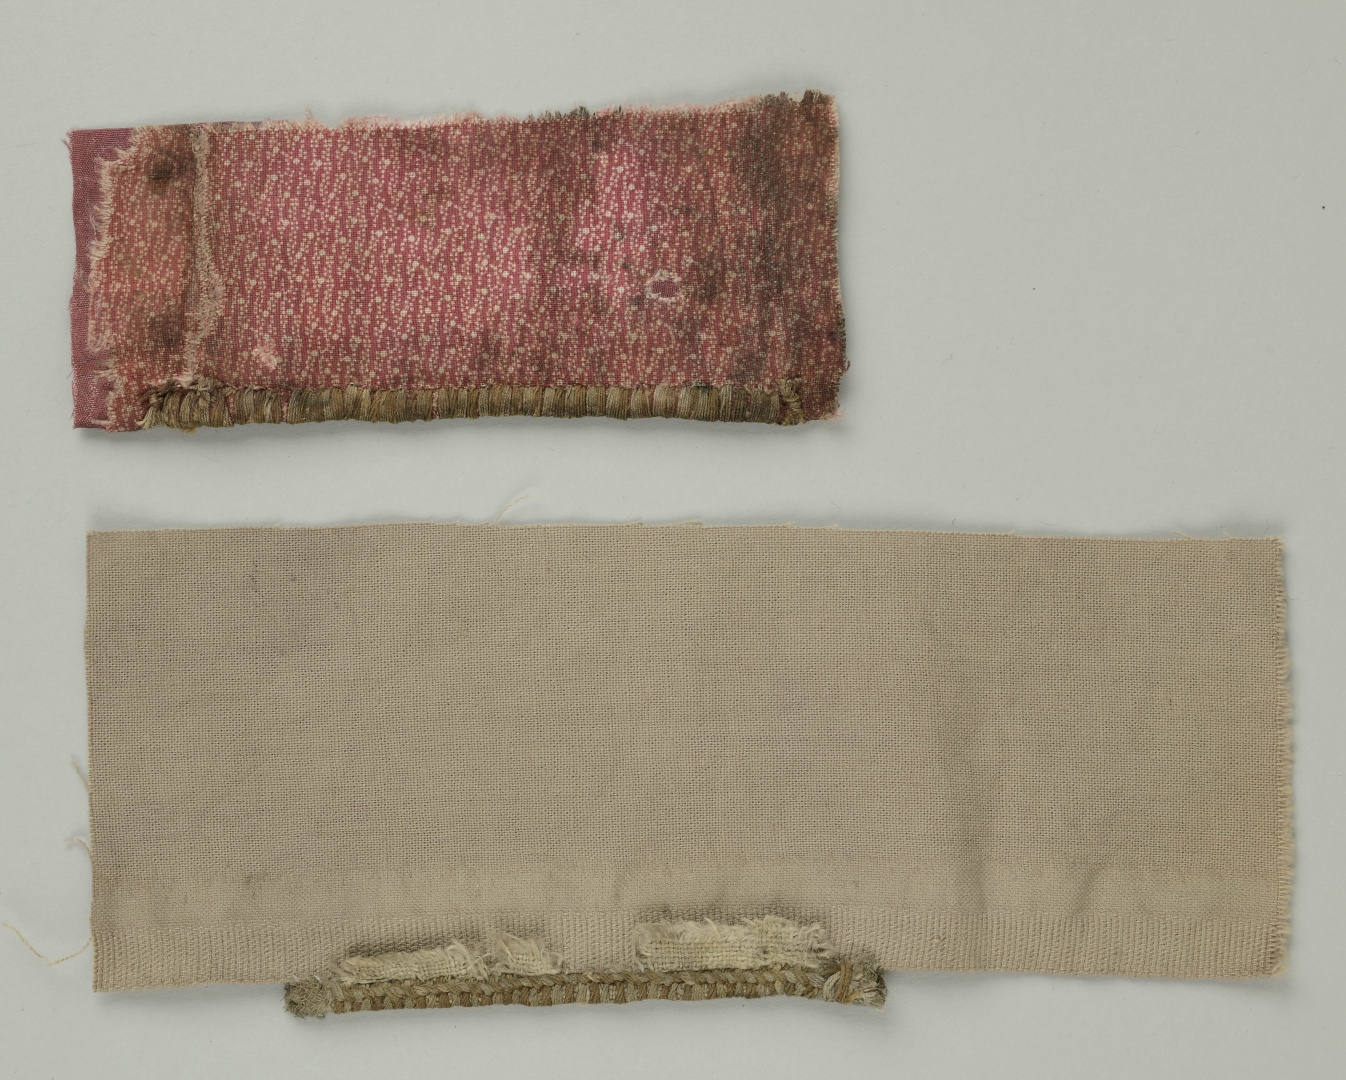 ill 34. As the initial backing textile of both headbands was different, they were lined with linen and cotton fabrics. © Tulvi Turo